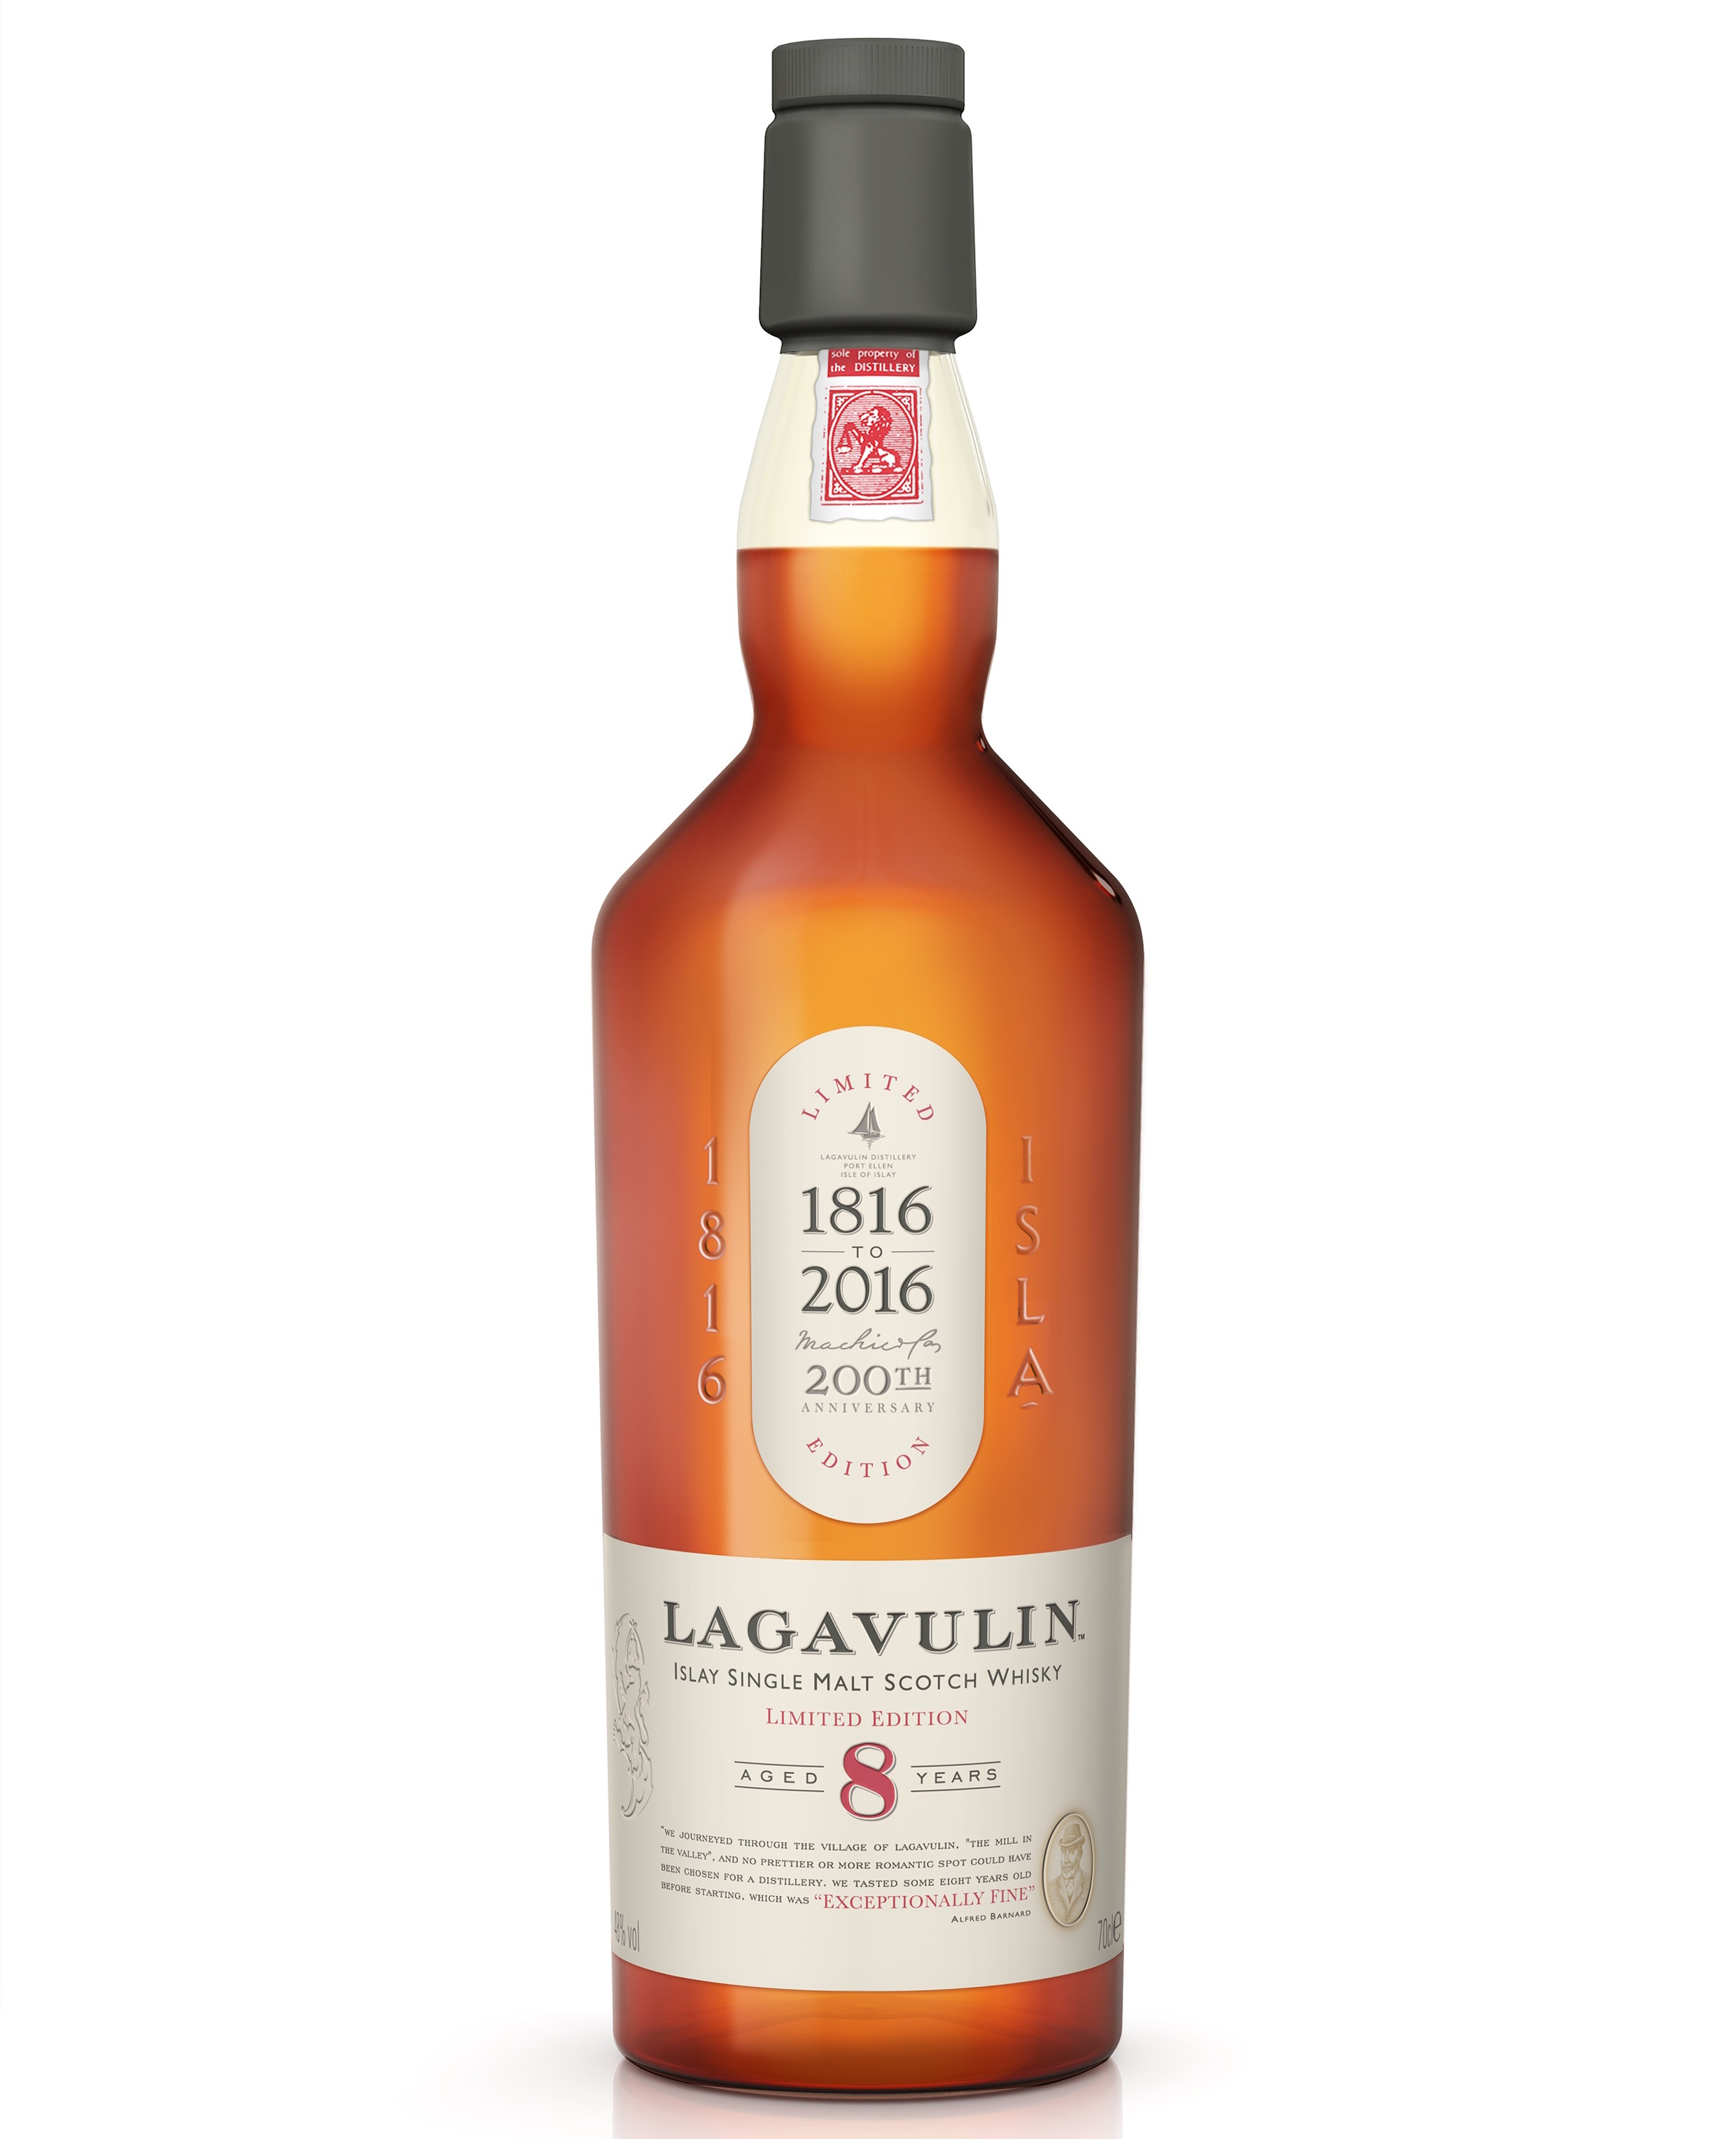 lagavulin-8-year-old